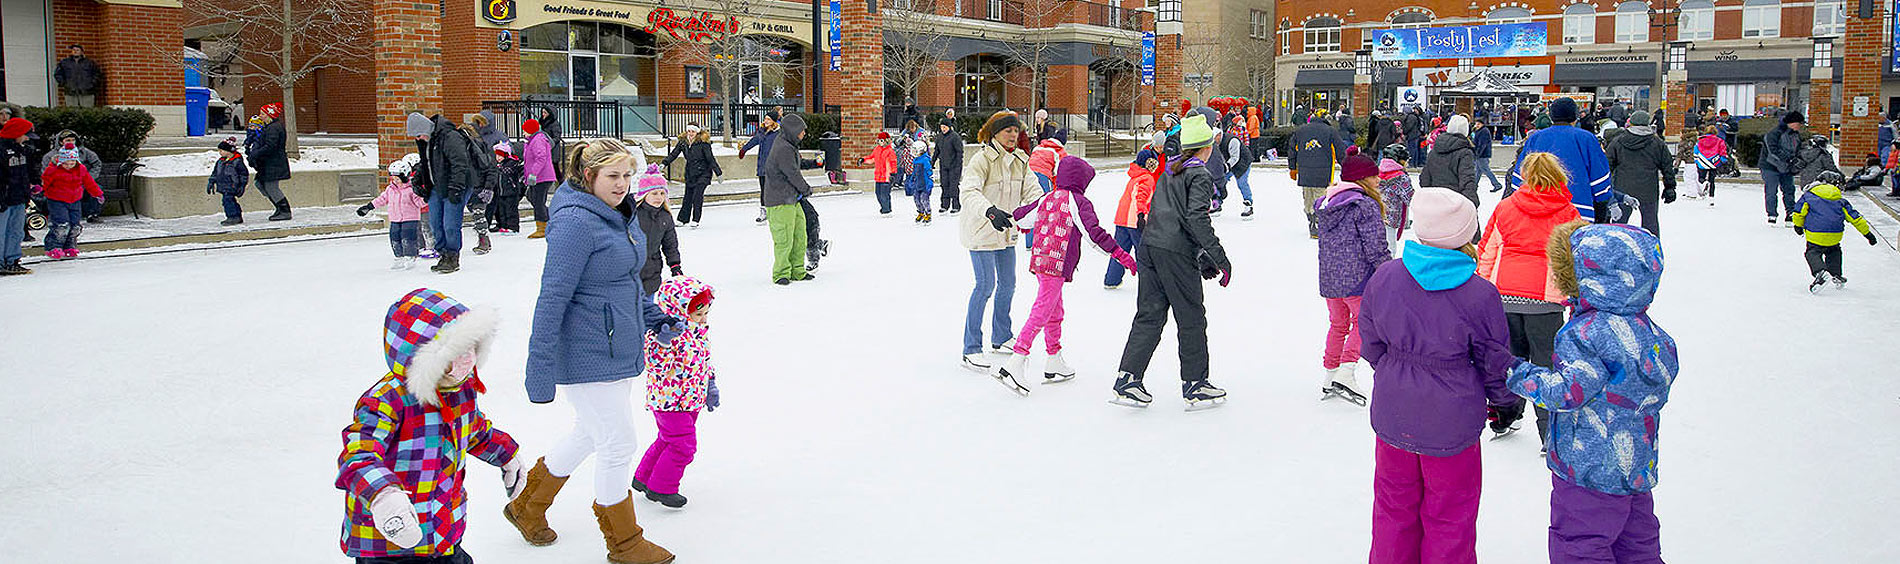 Harmony Square ice rink skaters